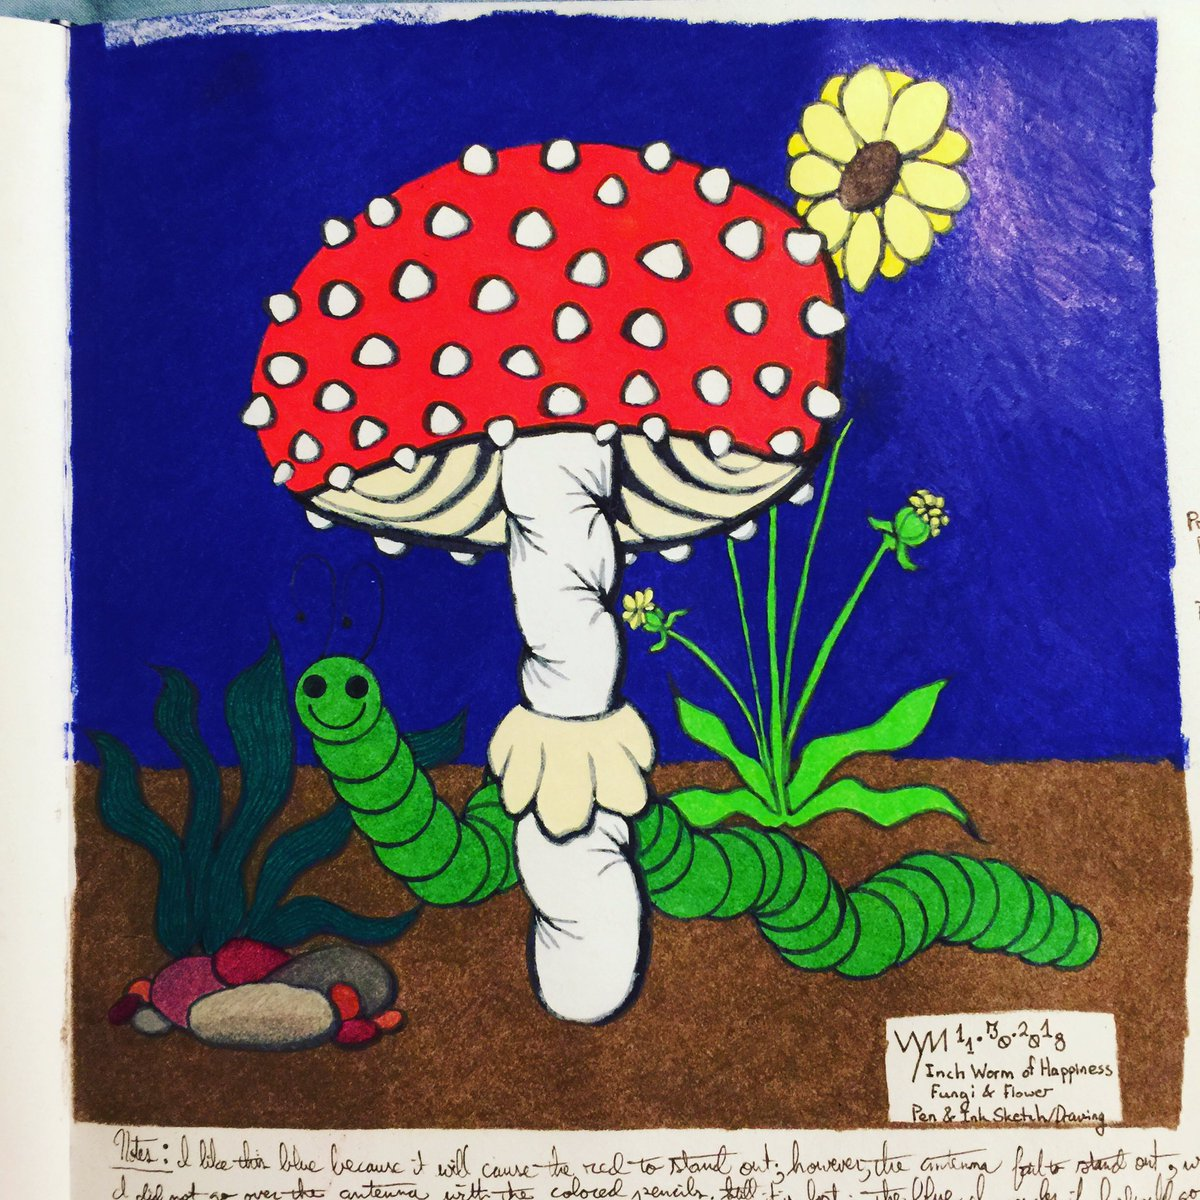 #wynart #InchWormofHappiness #fungi #mushroom #art #traditionalart #traditionaldrawing #drawing #coloredpencils #penandink #prismacolor #cansonpic.twitter.com/Y9Kl7f061t